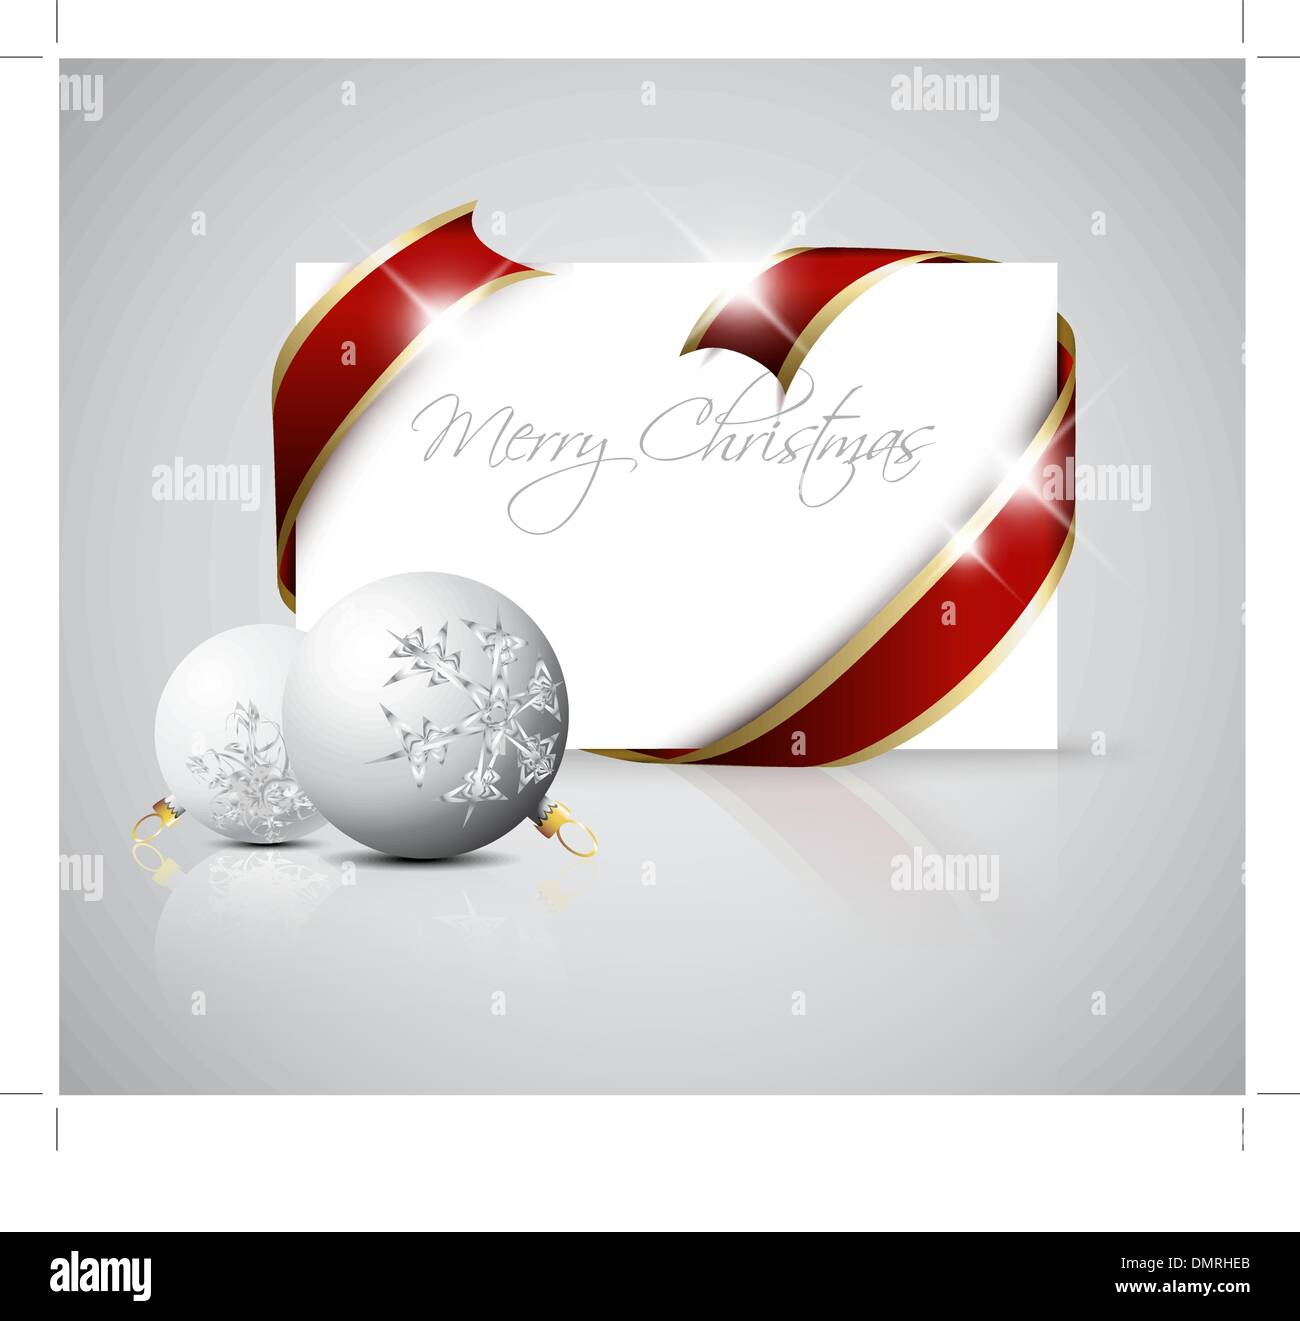 Christmas Card Paper Silver Stock Vector Images - Alamy